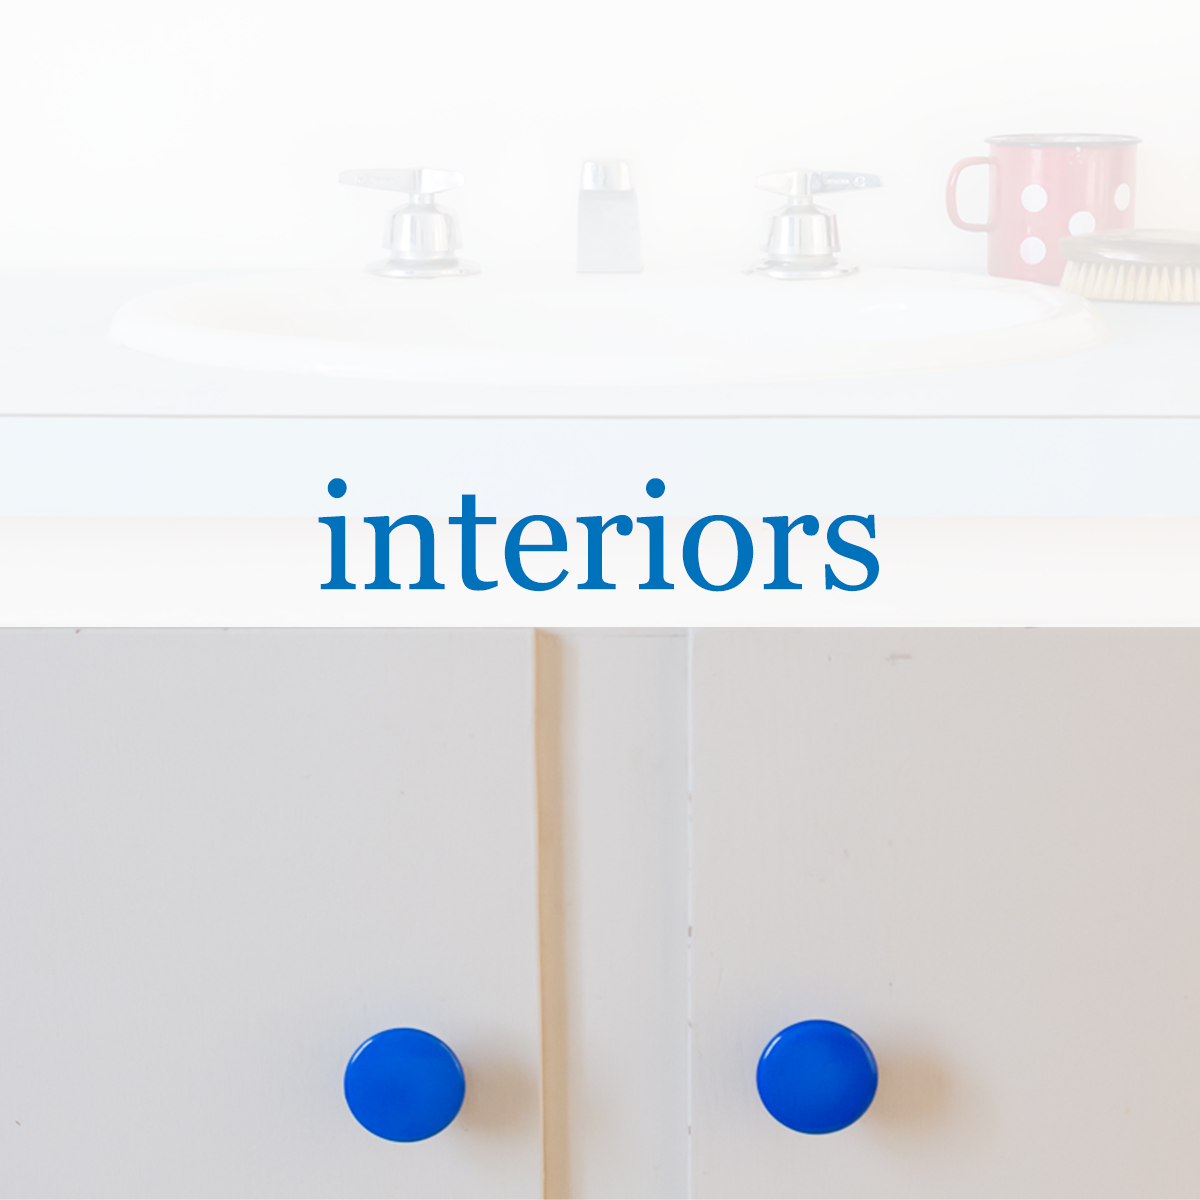 Welcome-Interiors-Half-White-Transparent.png